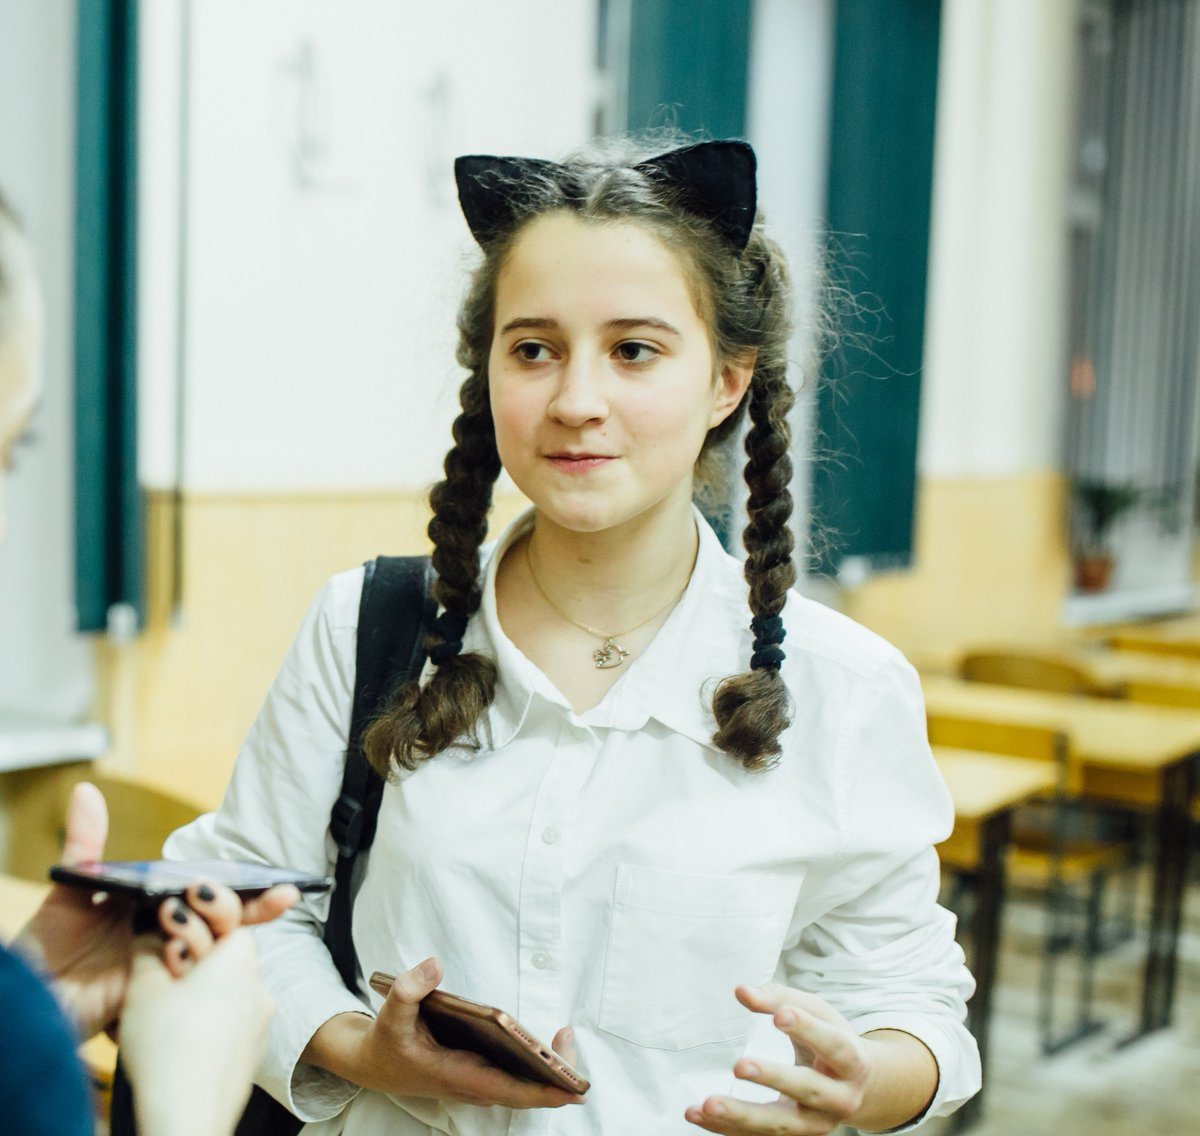 Now I think more about #water scarcity. I noticed that I used water every day without trying to save it. When I cleaned my teeth, I left water on. Now I turn it off as I dont want to harm our planet - Elvira, participant of @TheWorldsLesson on water in #Ukraine. #WorldWaterDay